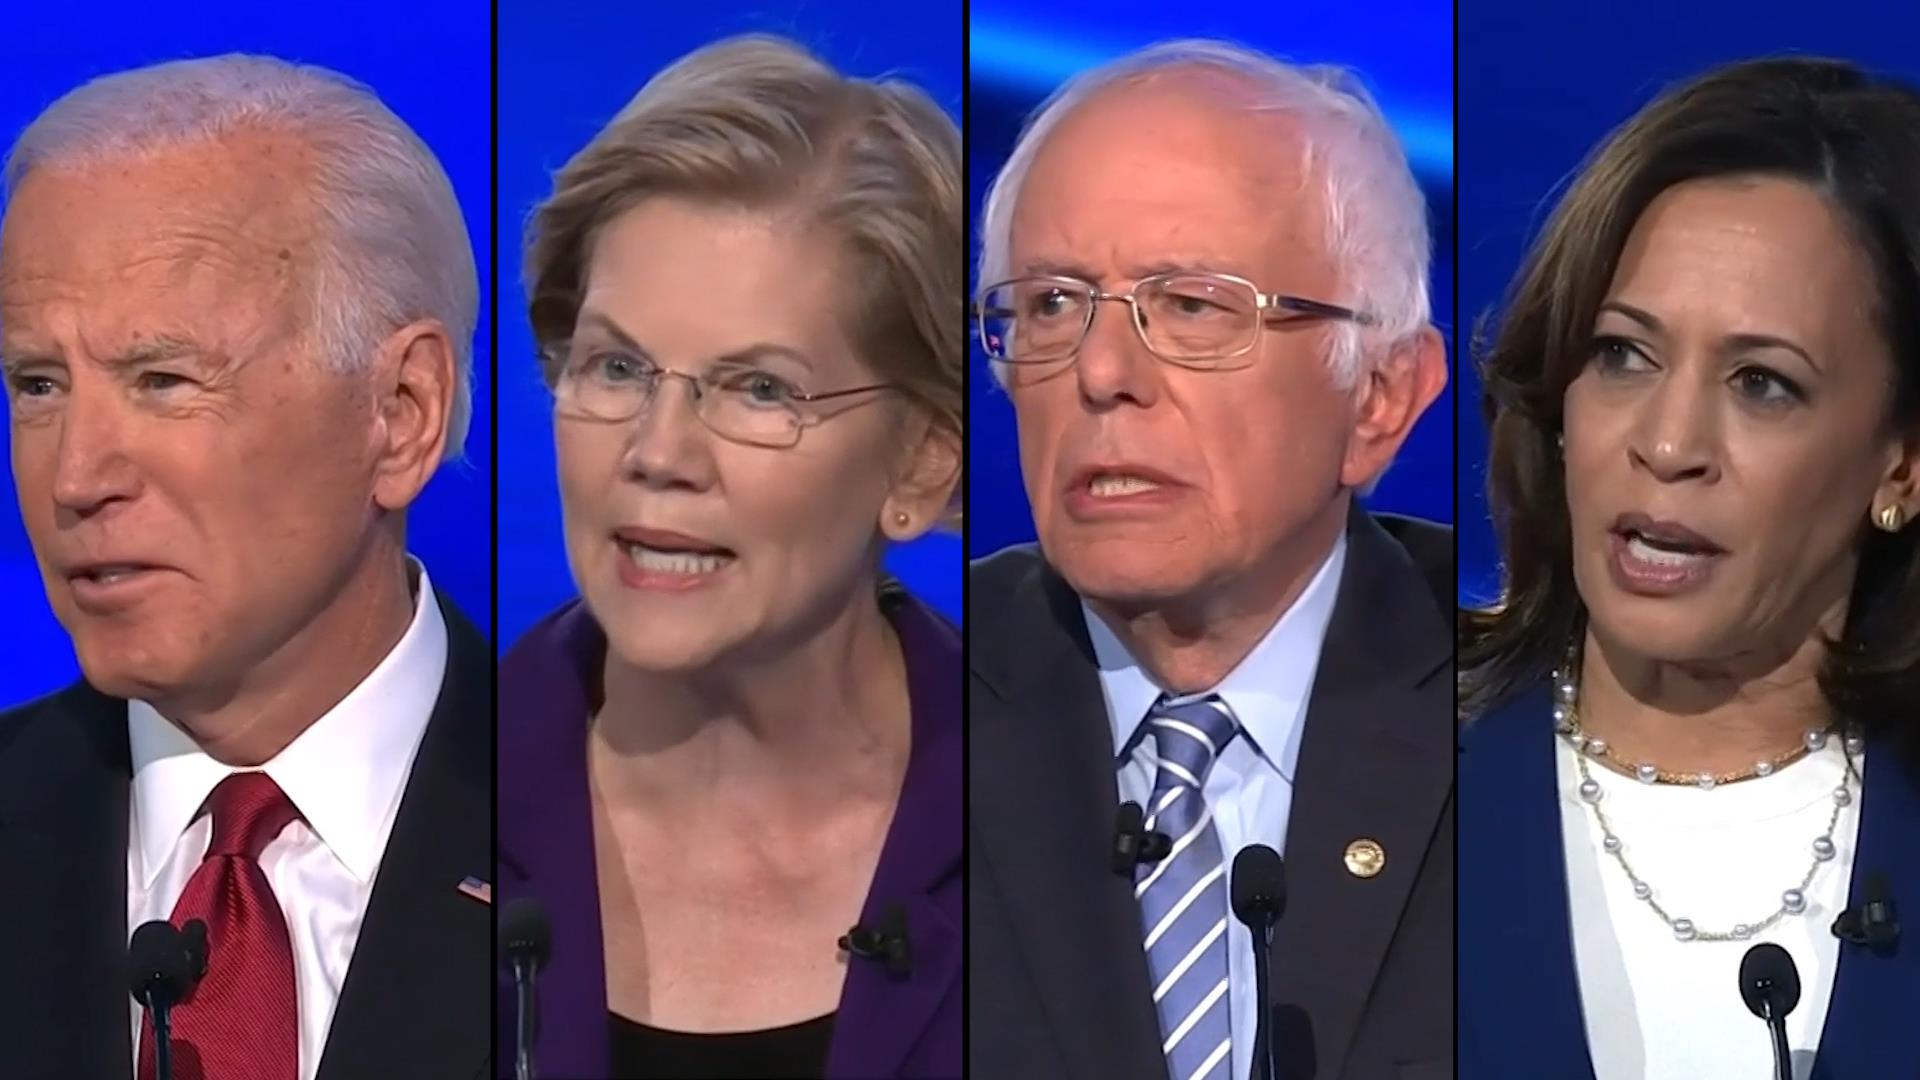 Fourth Democratic debate: Everything you need to see in 4 minutes